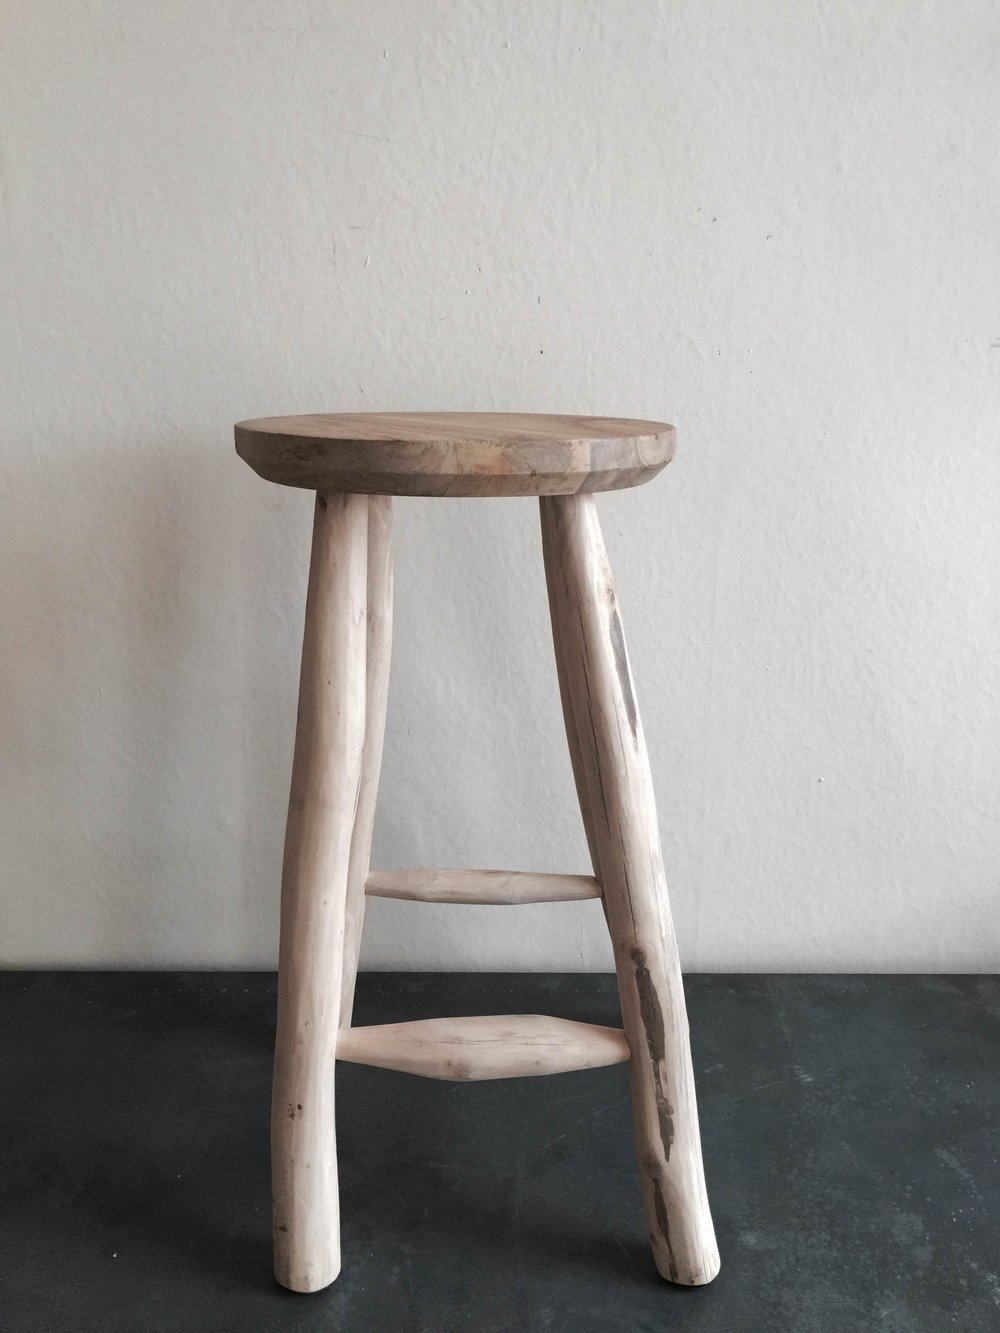 Tall Wooden Stool £140 (2).JPG